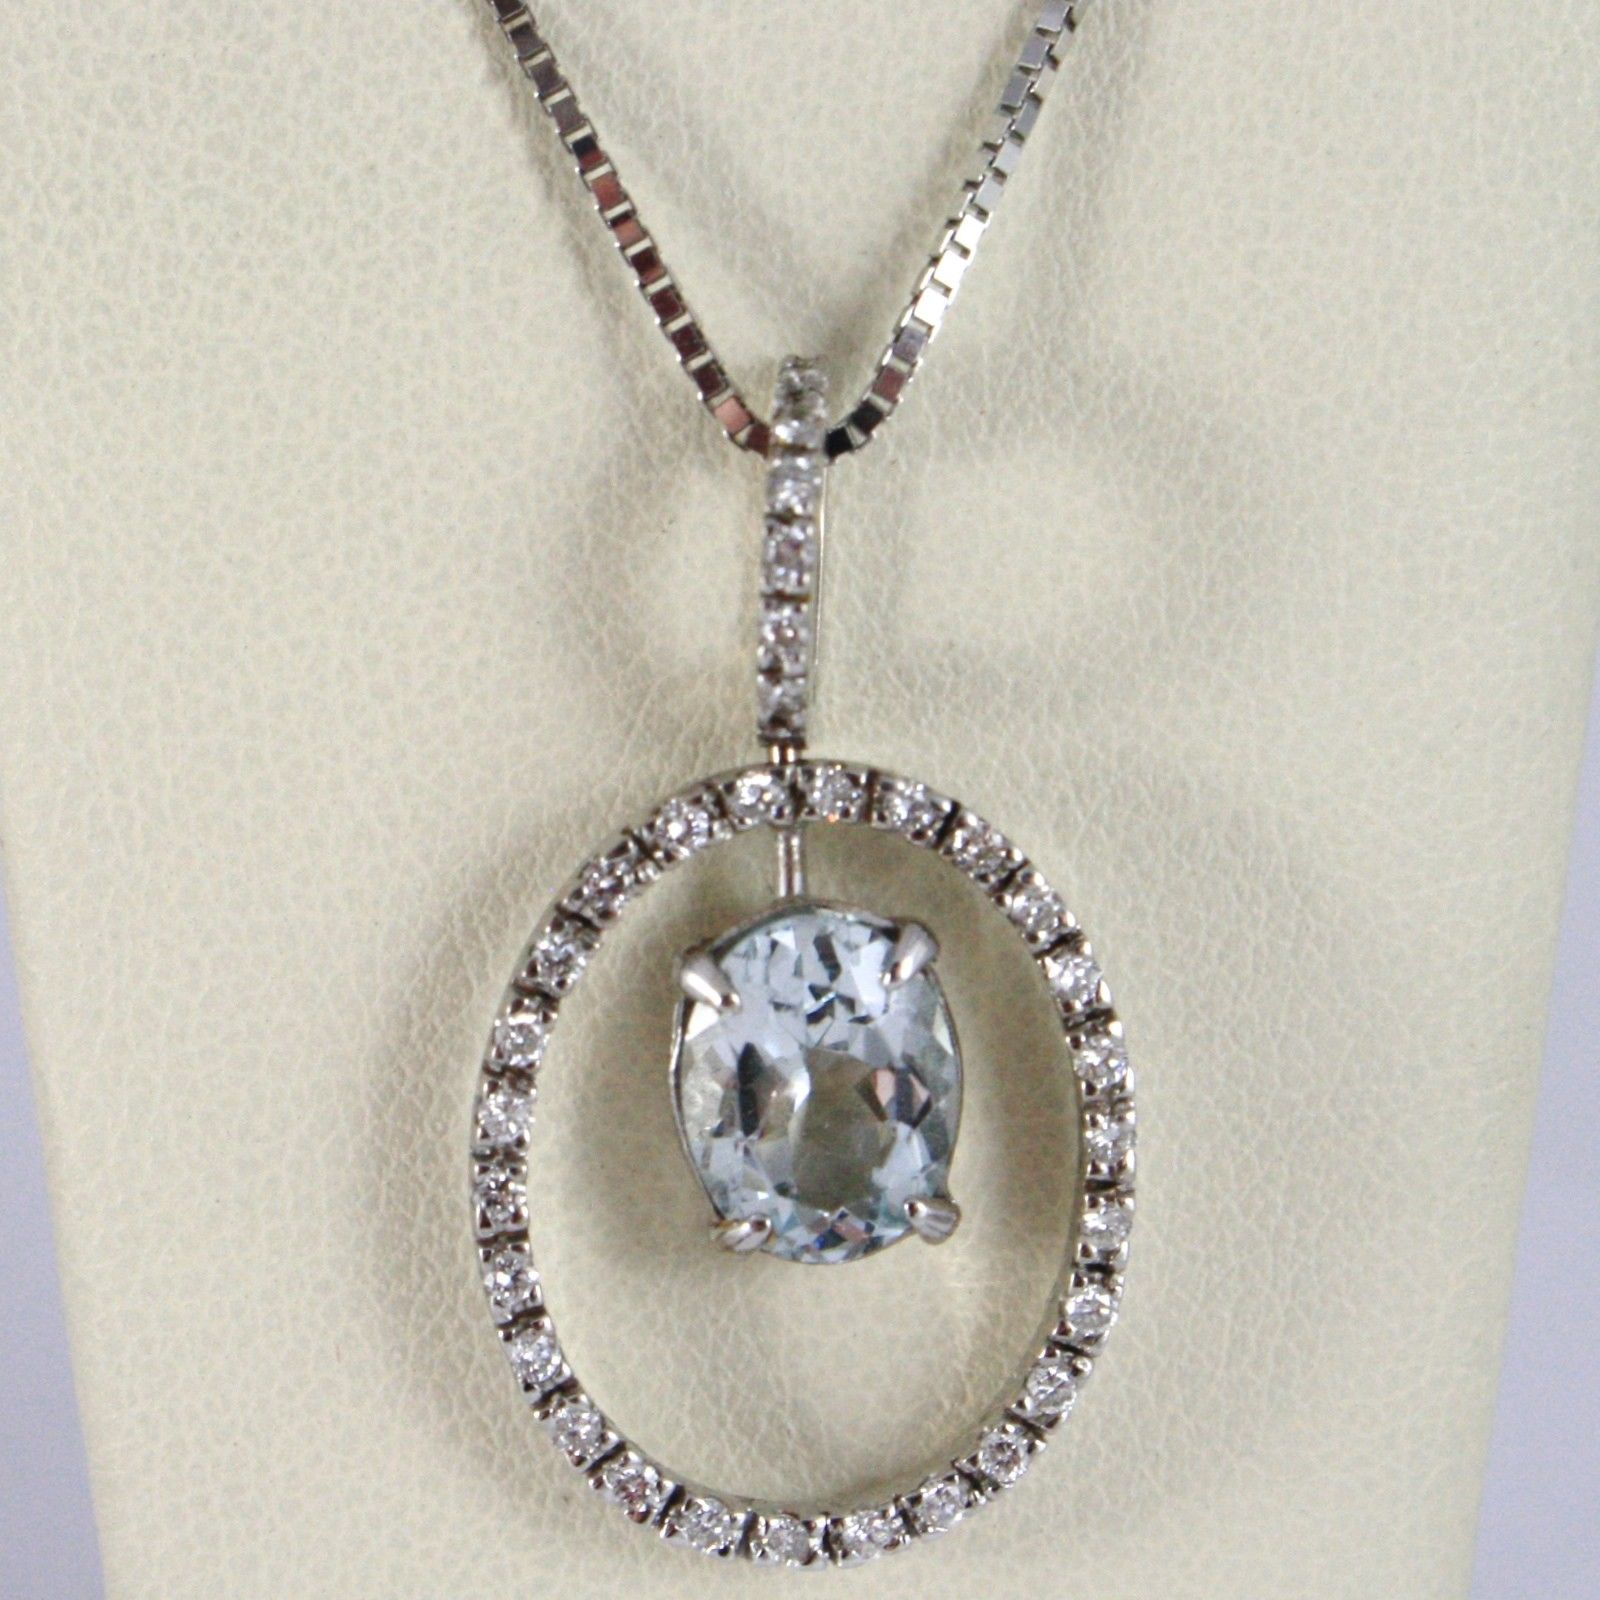 18K WHITE GOLD NECKLACE, OVAL AQUAMARINE PENDANT, DIAMONDS FRAME, VENETIAN CHAIN